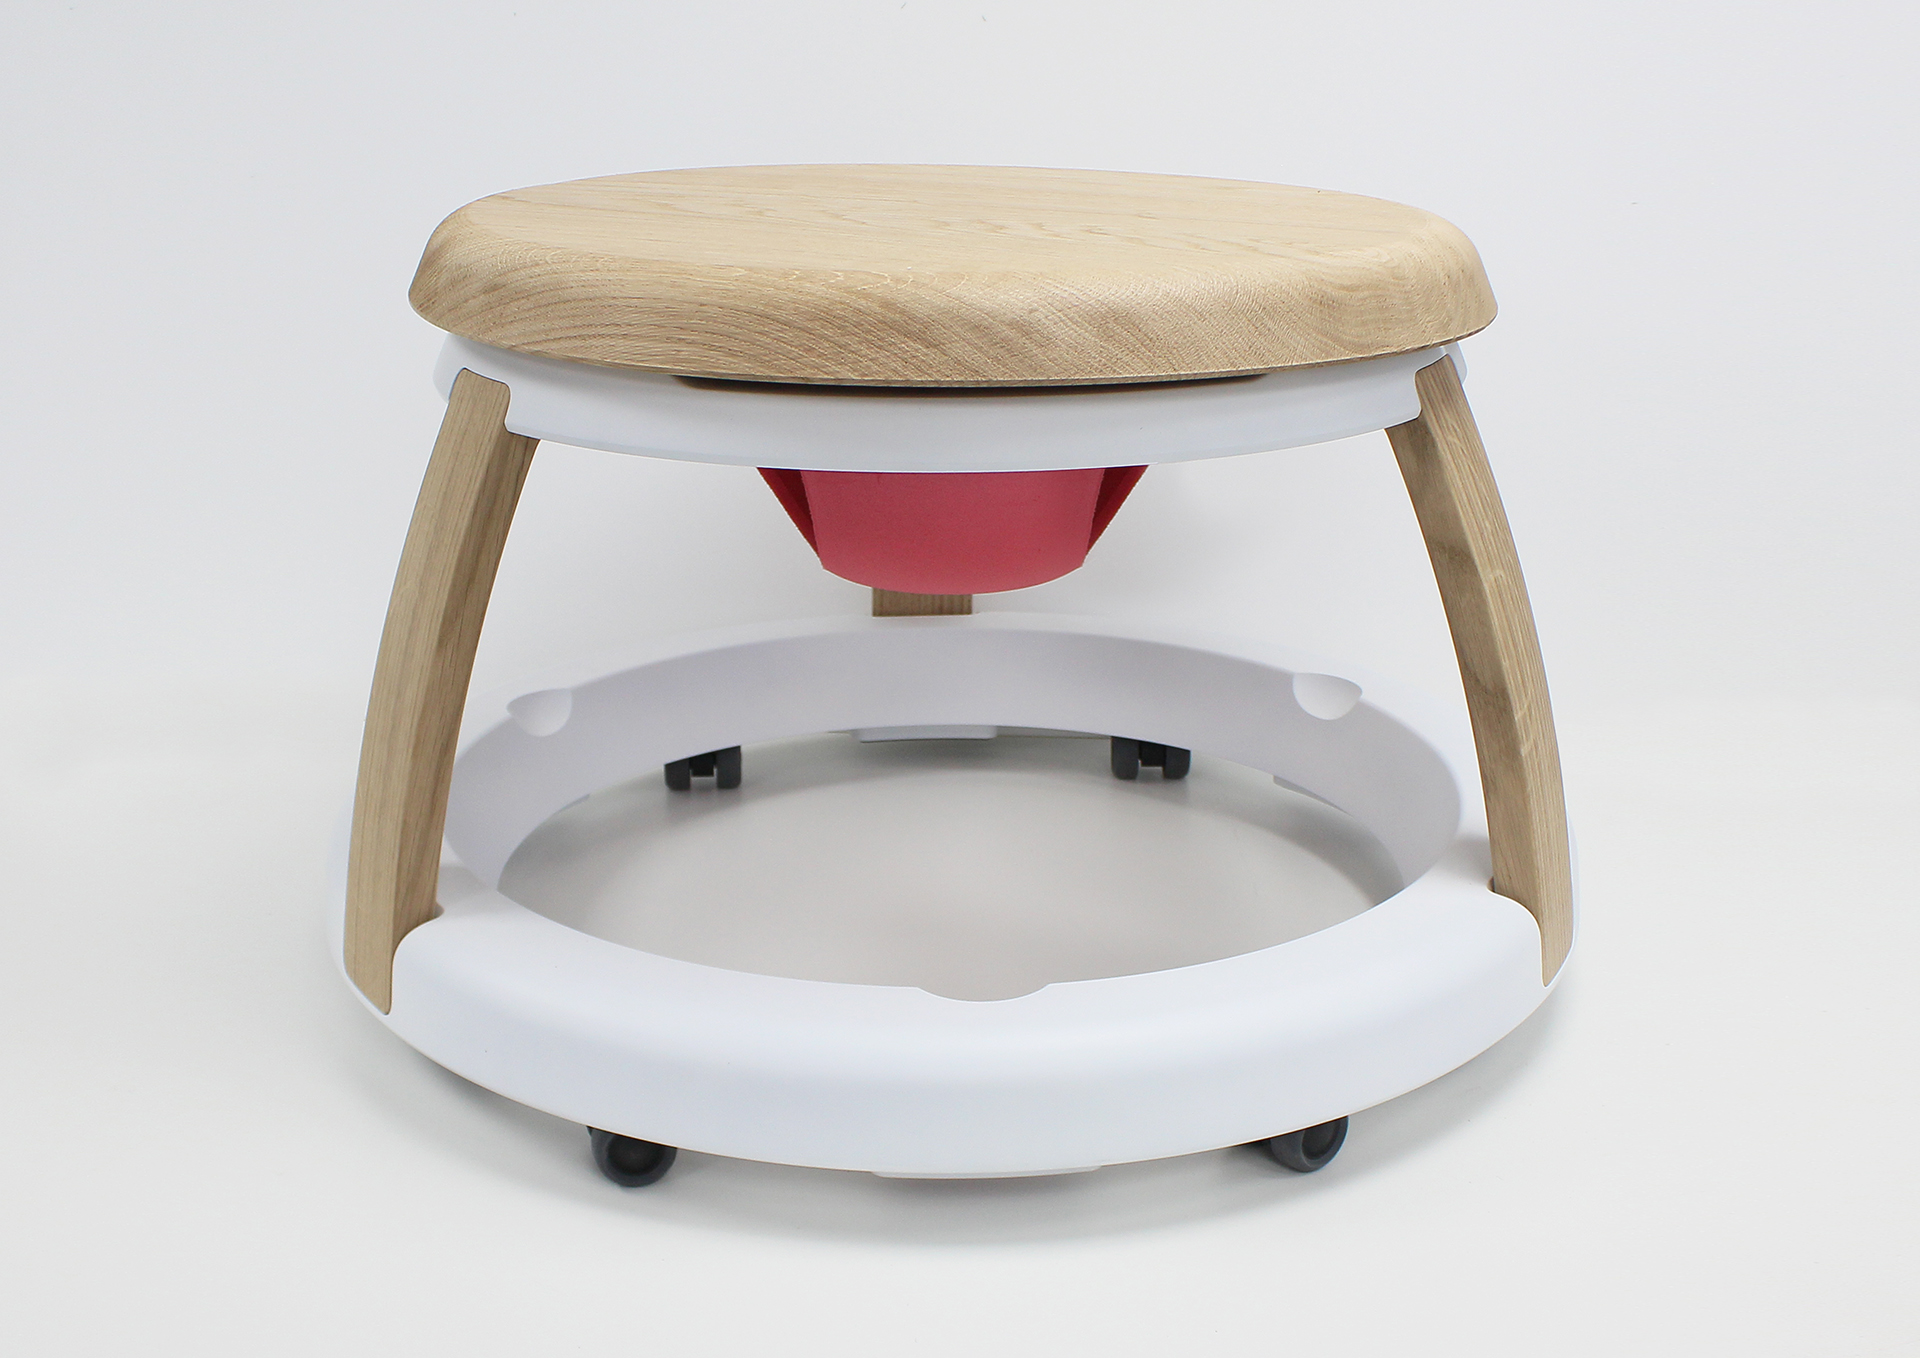 Clarks Baby Walker Table top.jpg